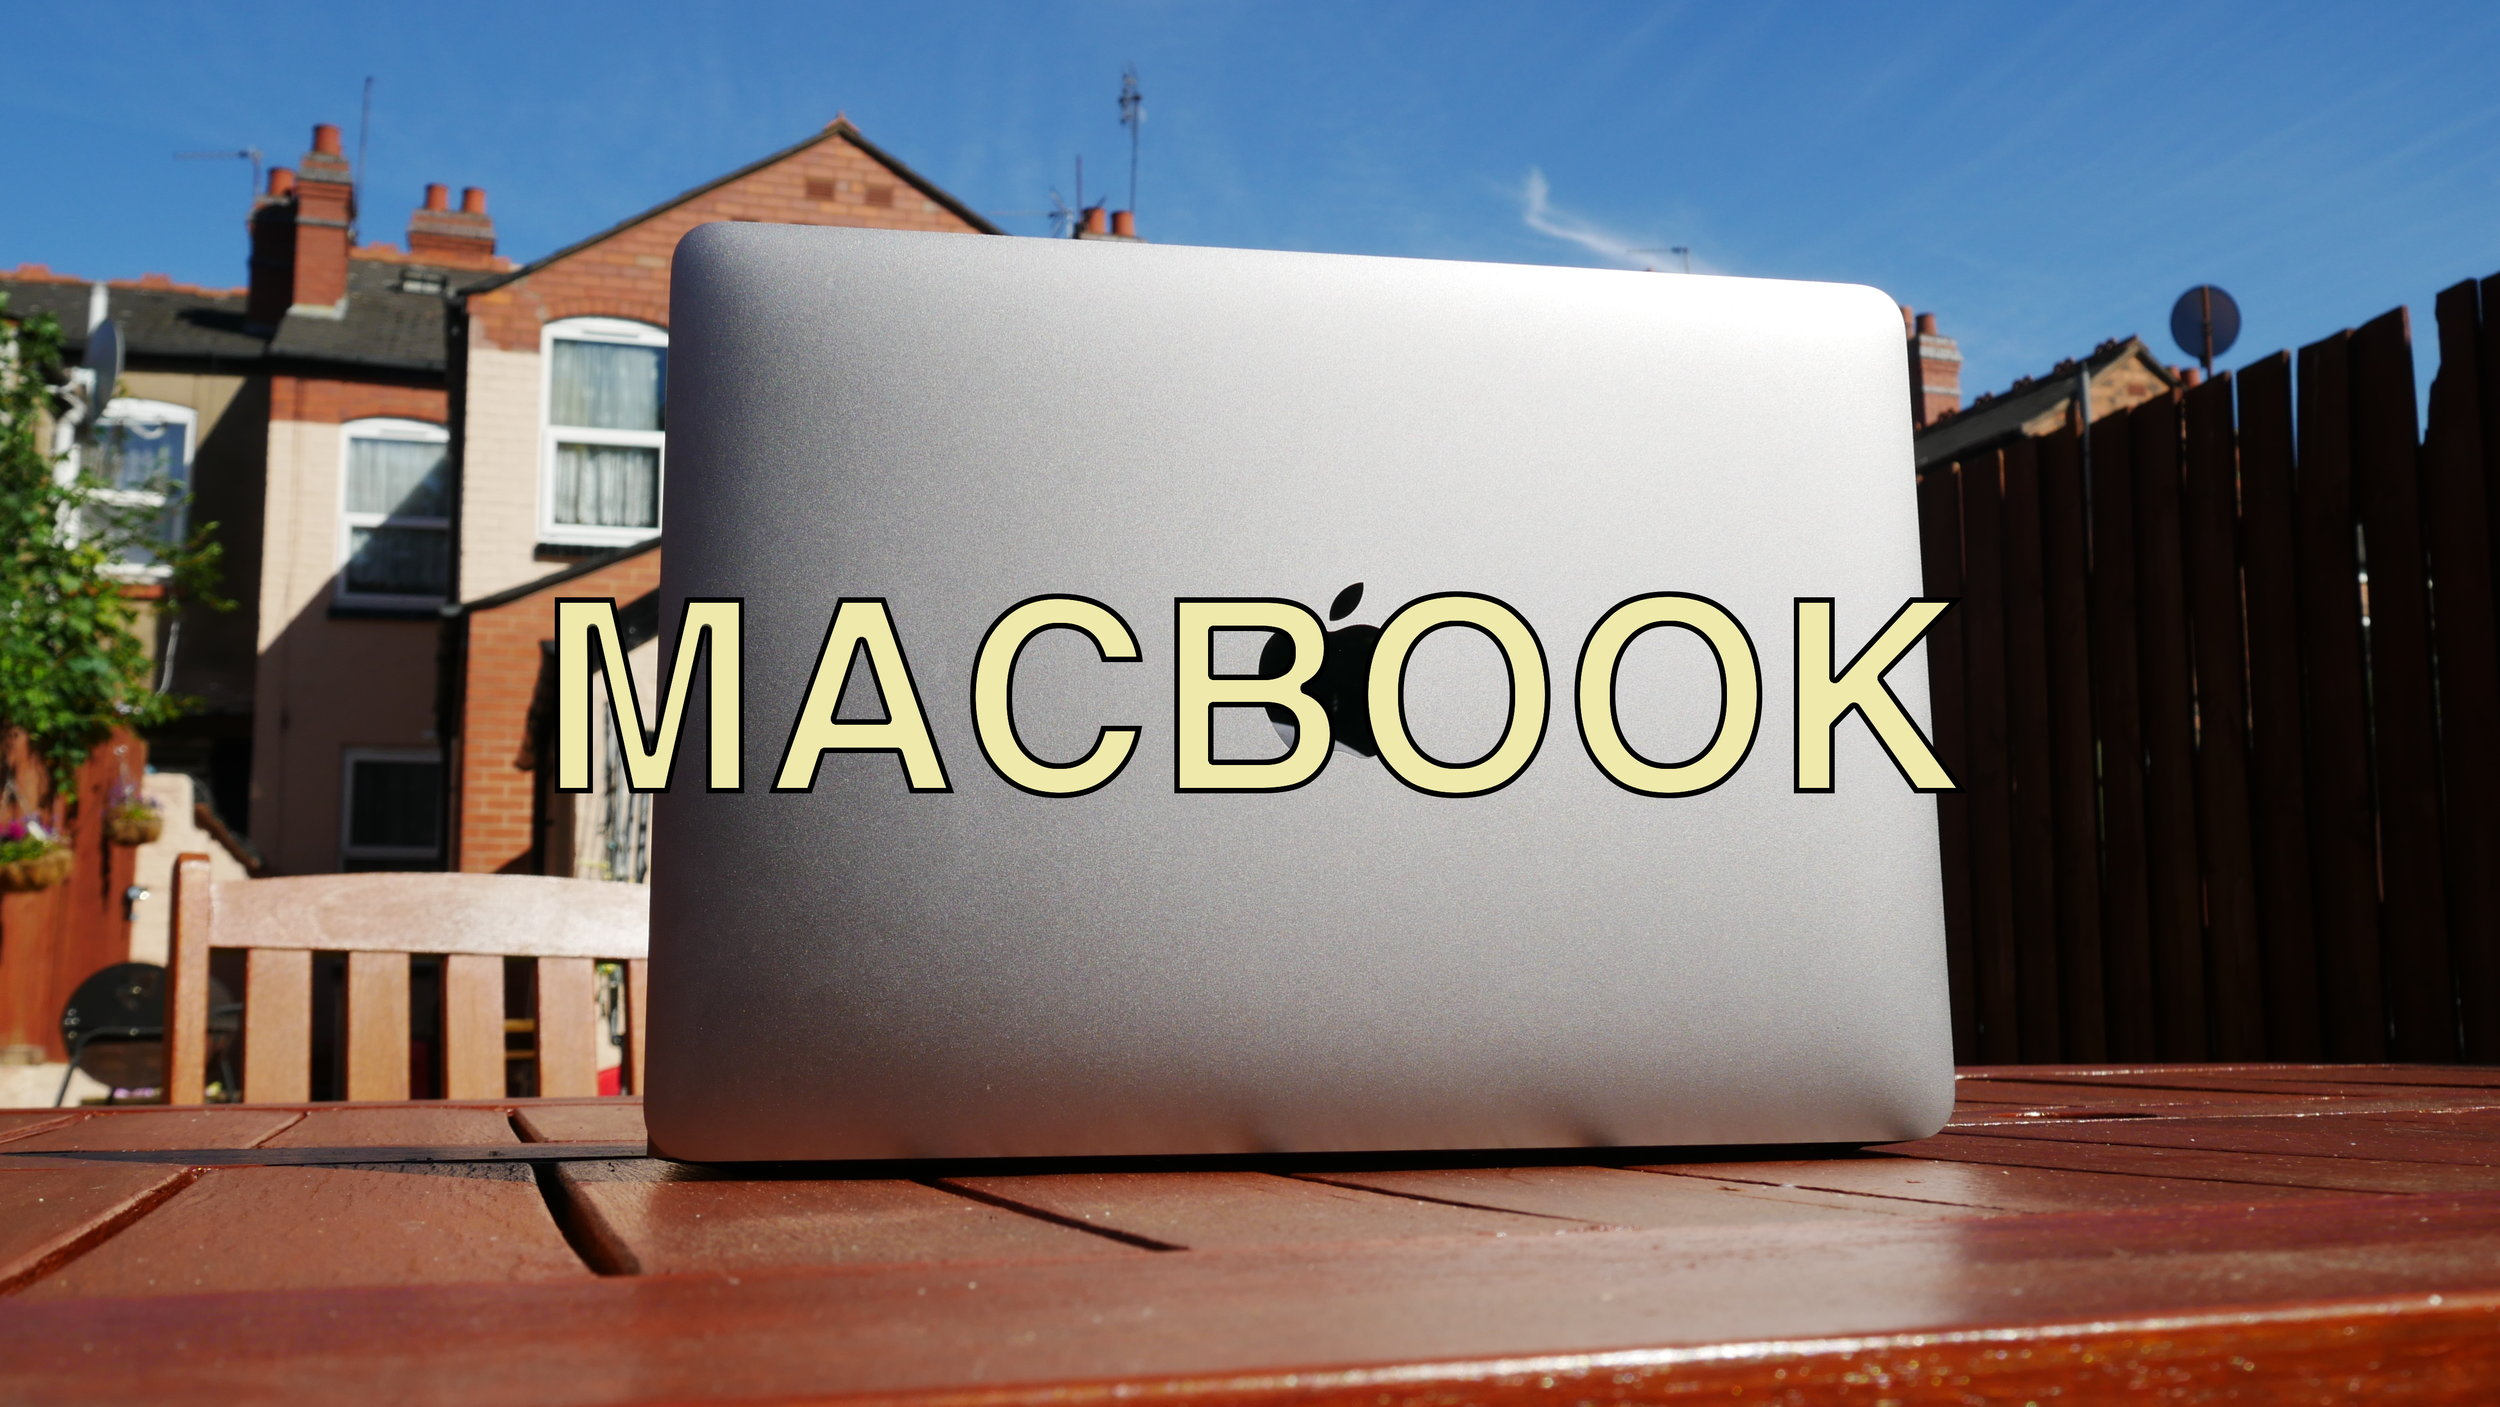 MACBOOK.JPG